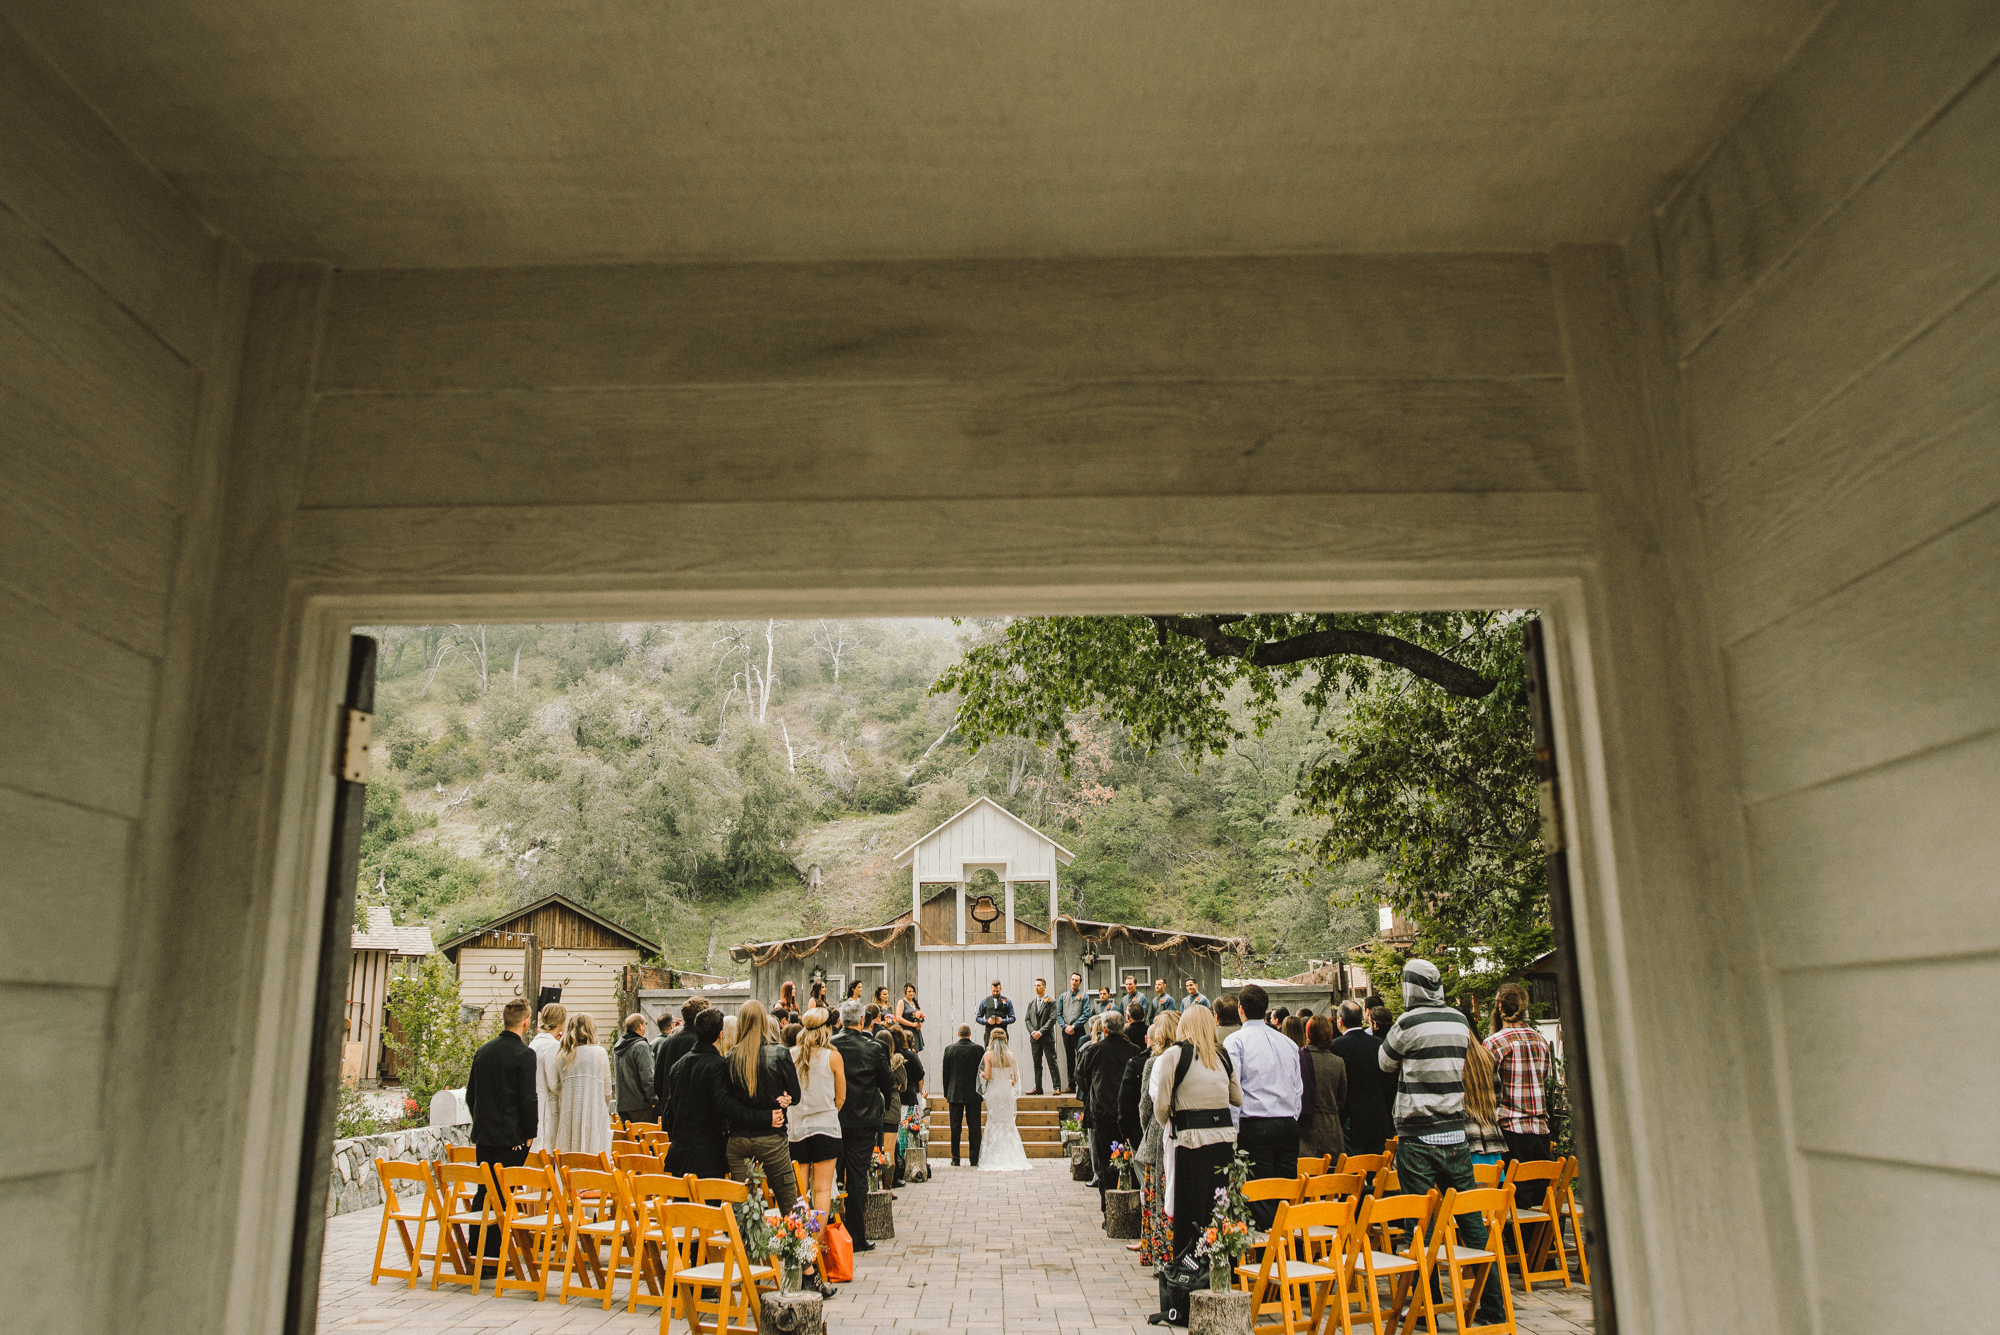 Isaiah & Taylor Photography - Los Angeles - Destination Wedding Photographers - Oak Glen Wilshire Ranch Foggy Forest Wedding-58.jpg